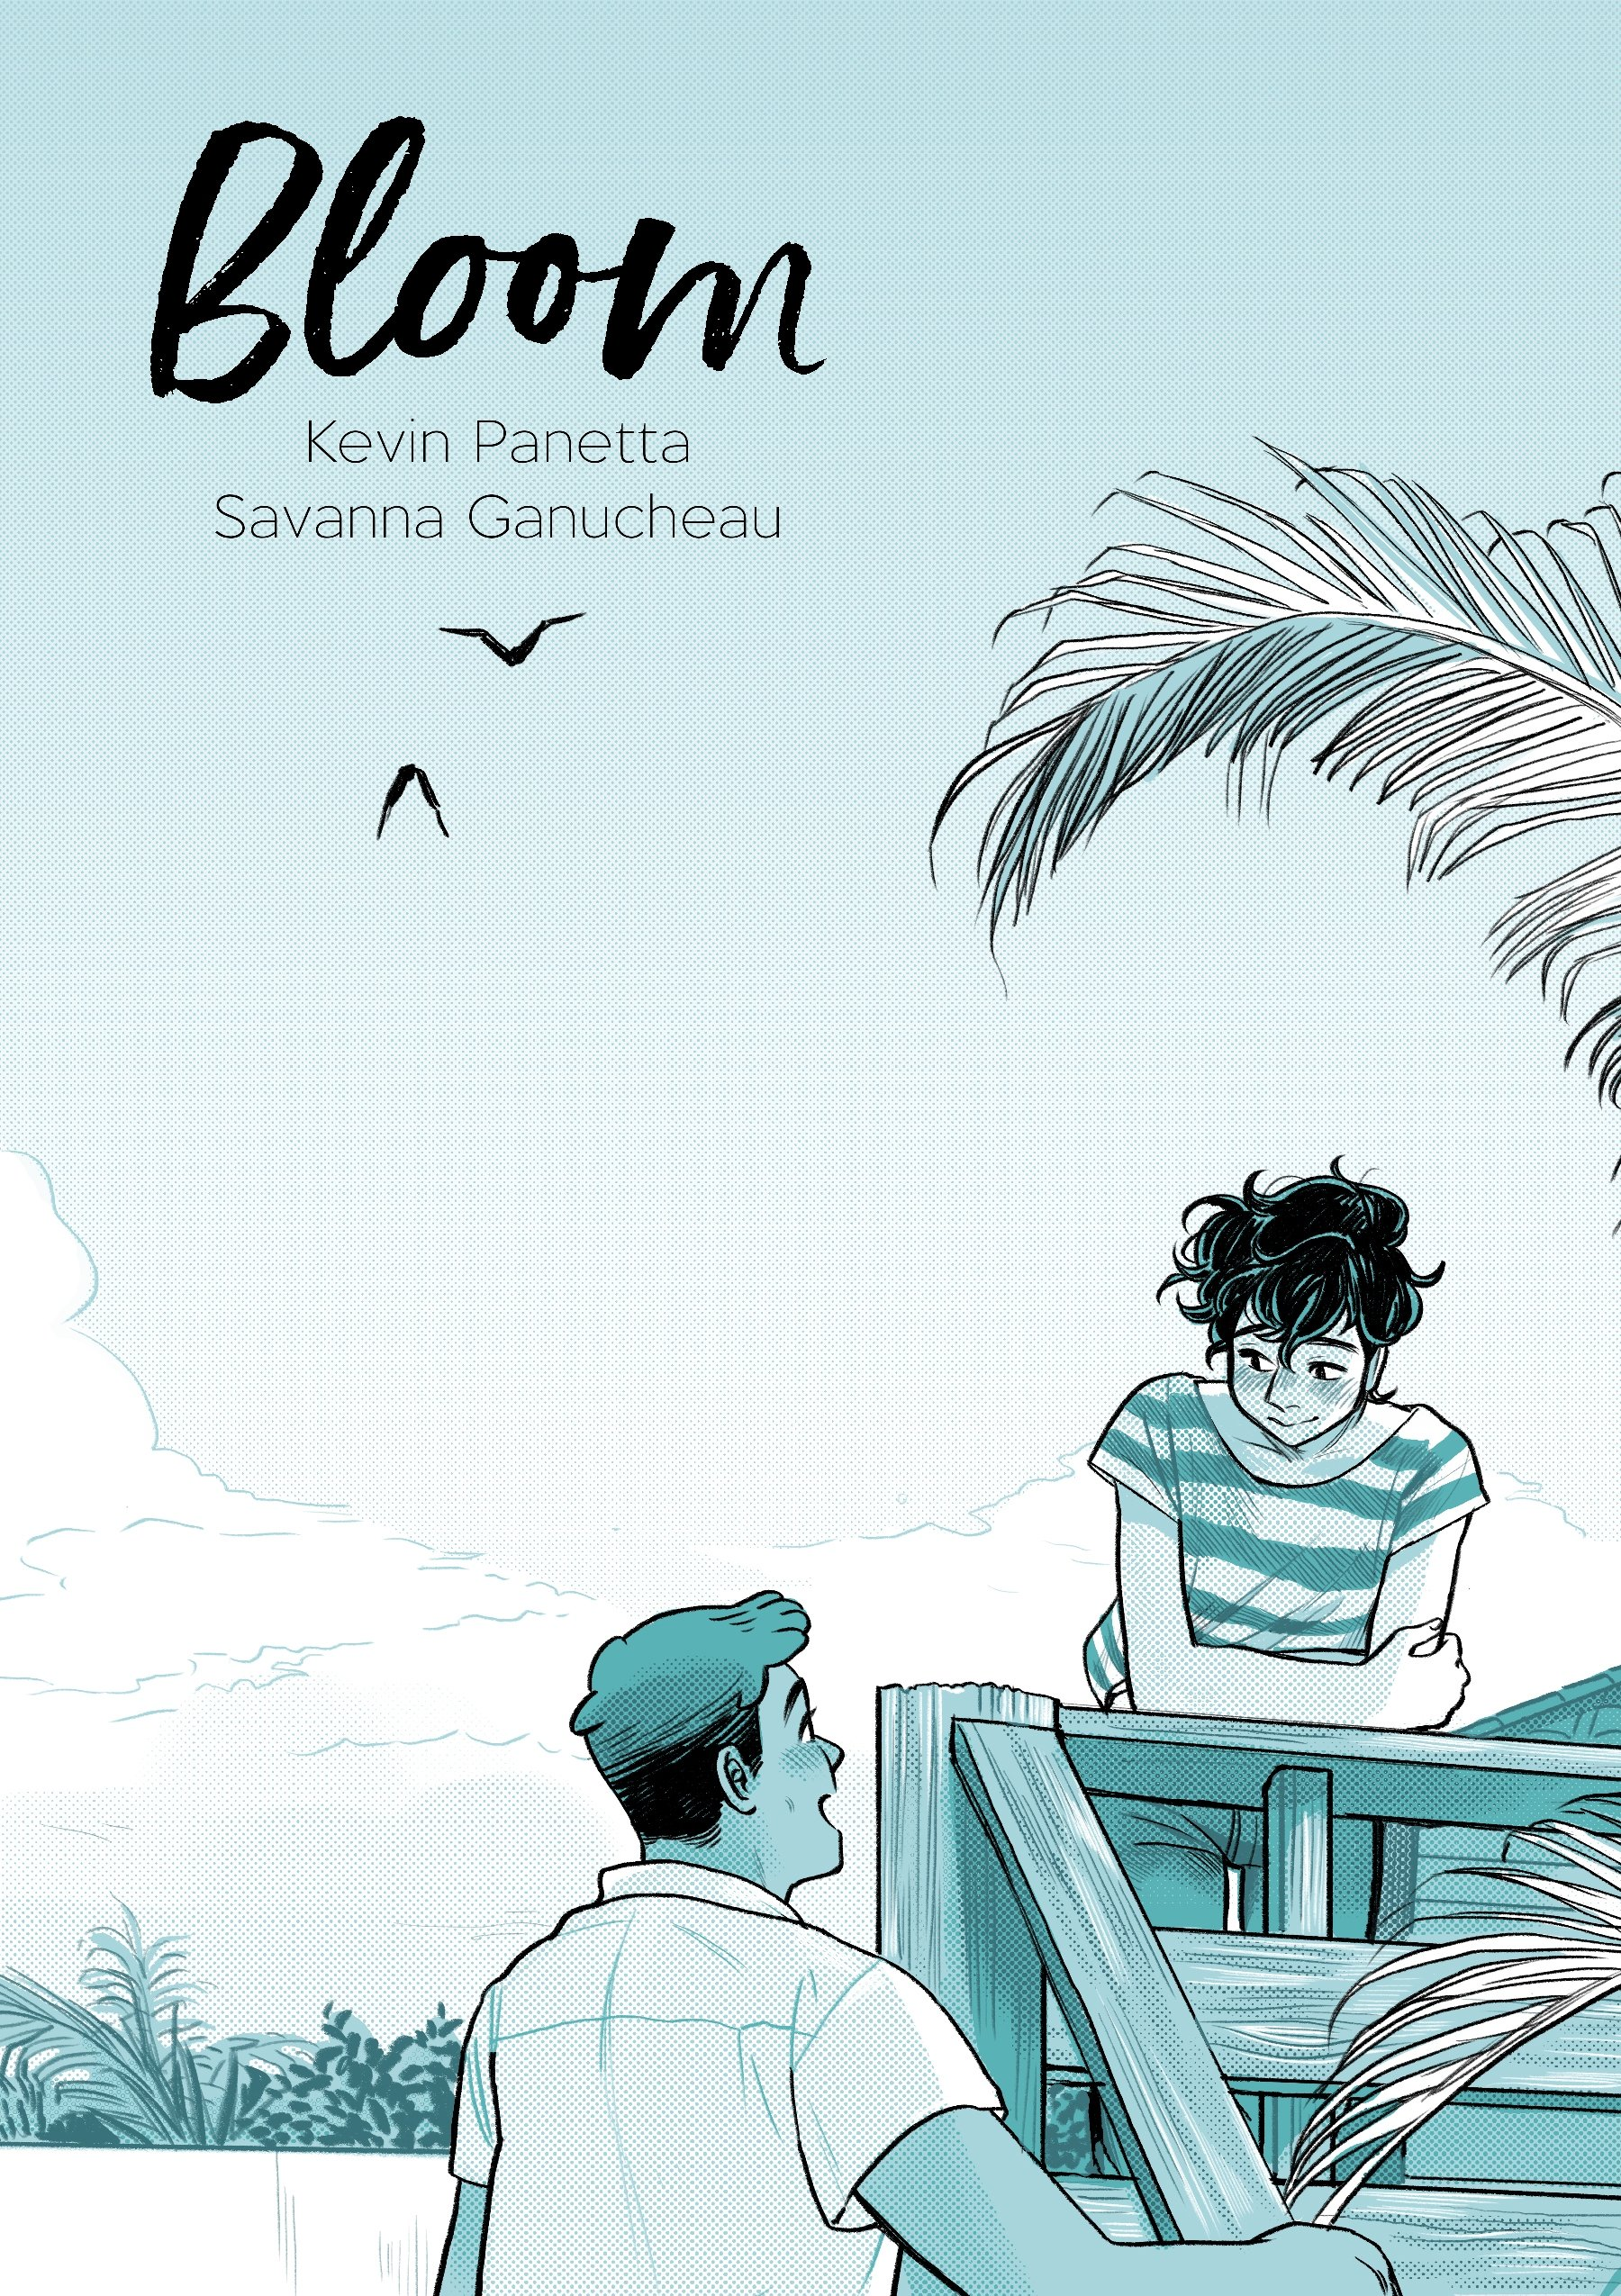 'Bloom' from First Second Books, written by Kevin Panetta and illustrated by Savanna Ganucheau